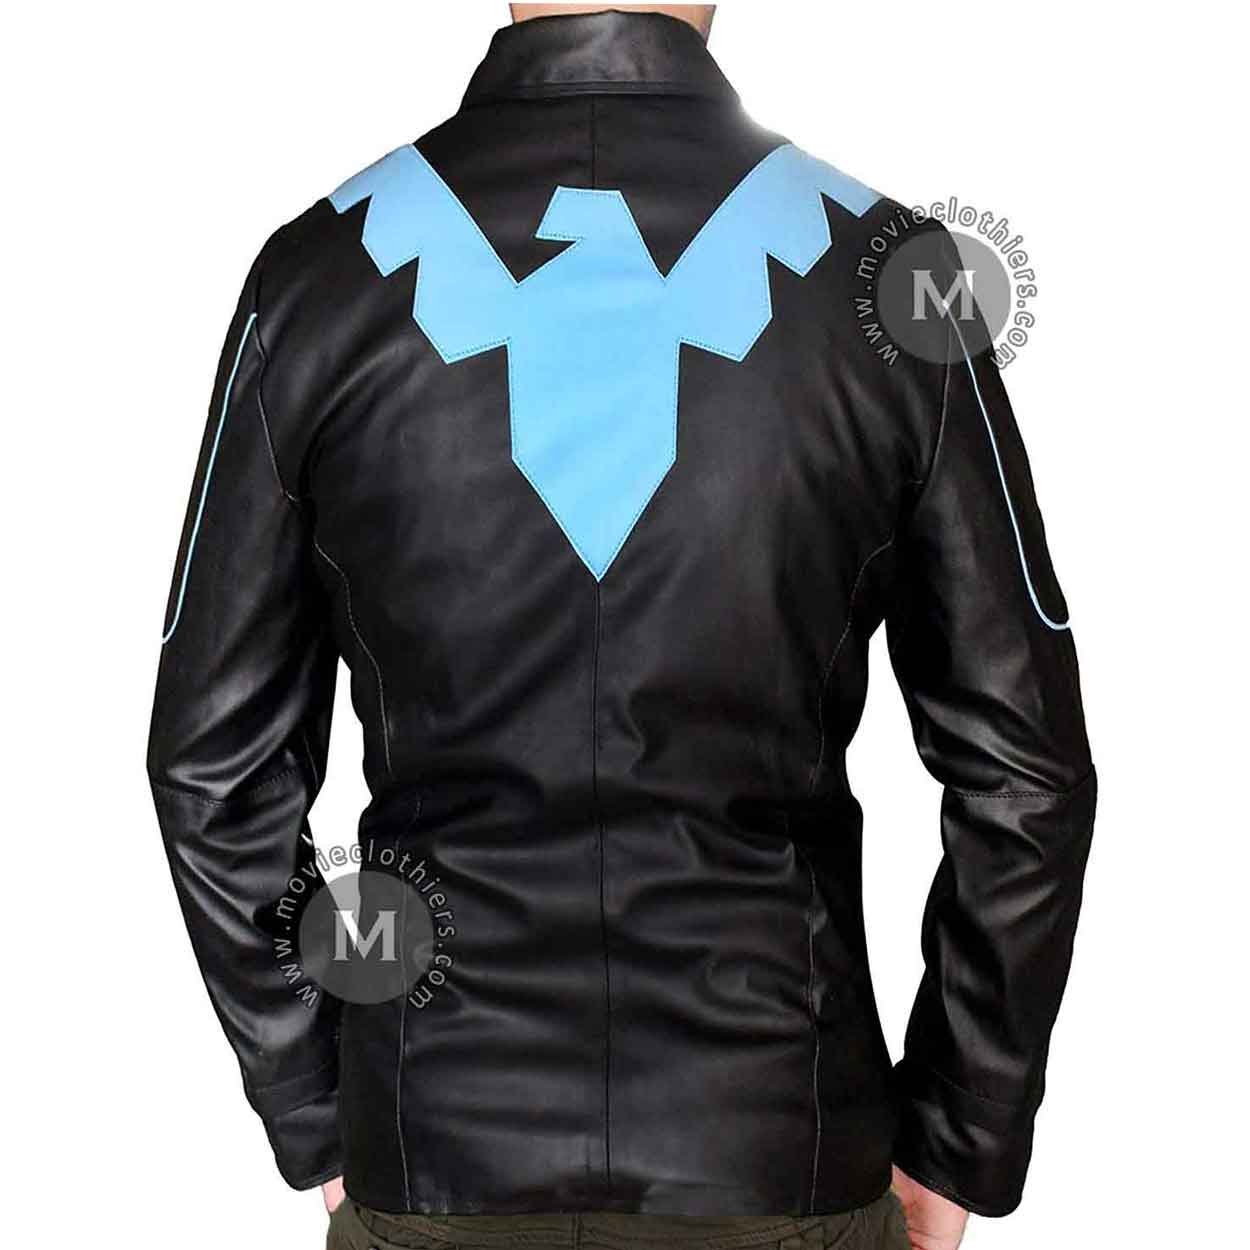 Batman Nightwing Leather Jacket For Sale-8463